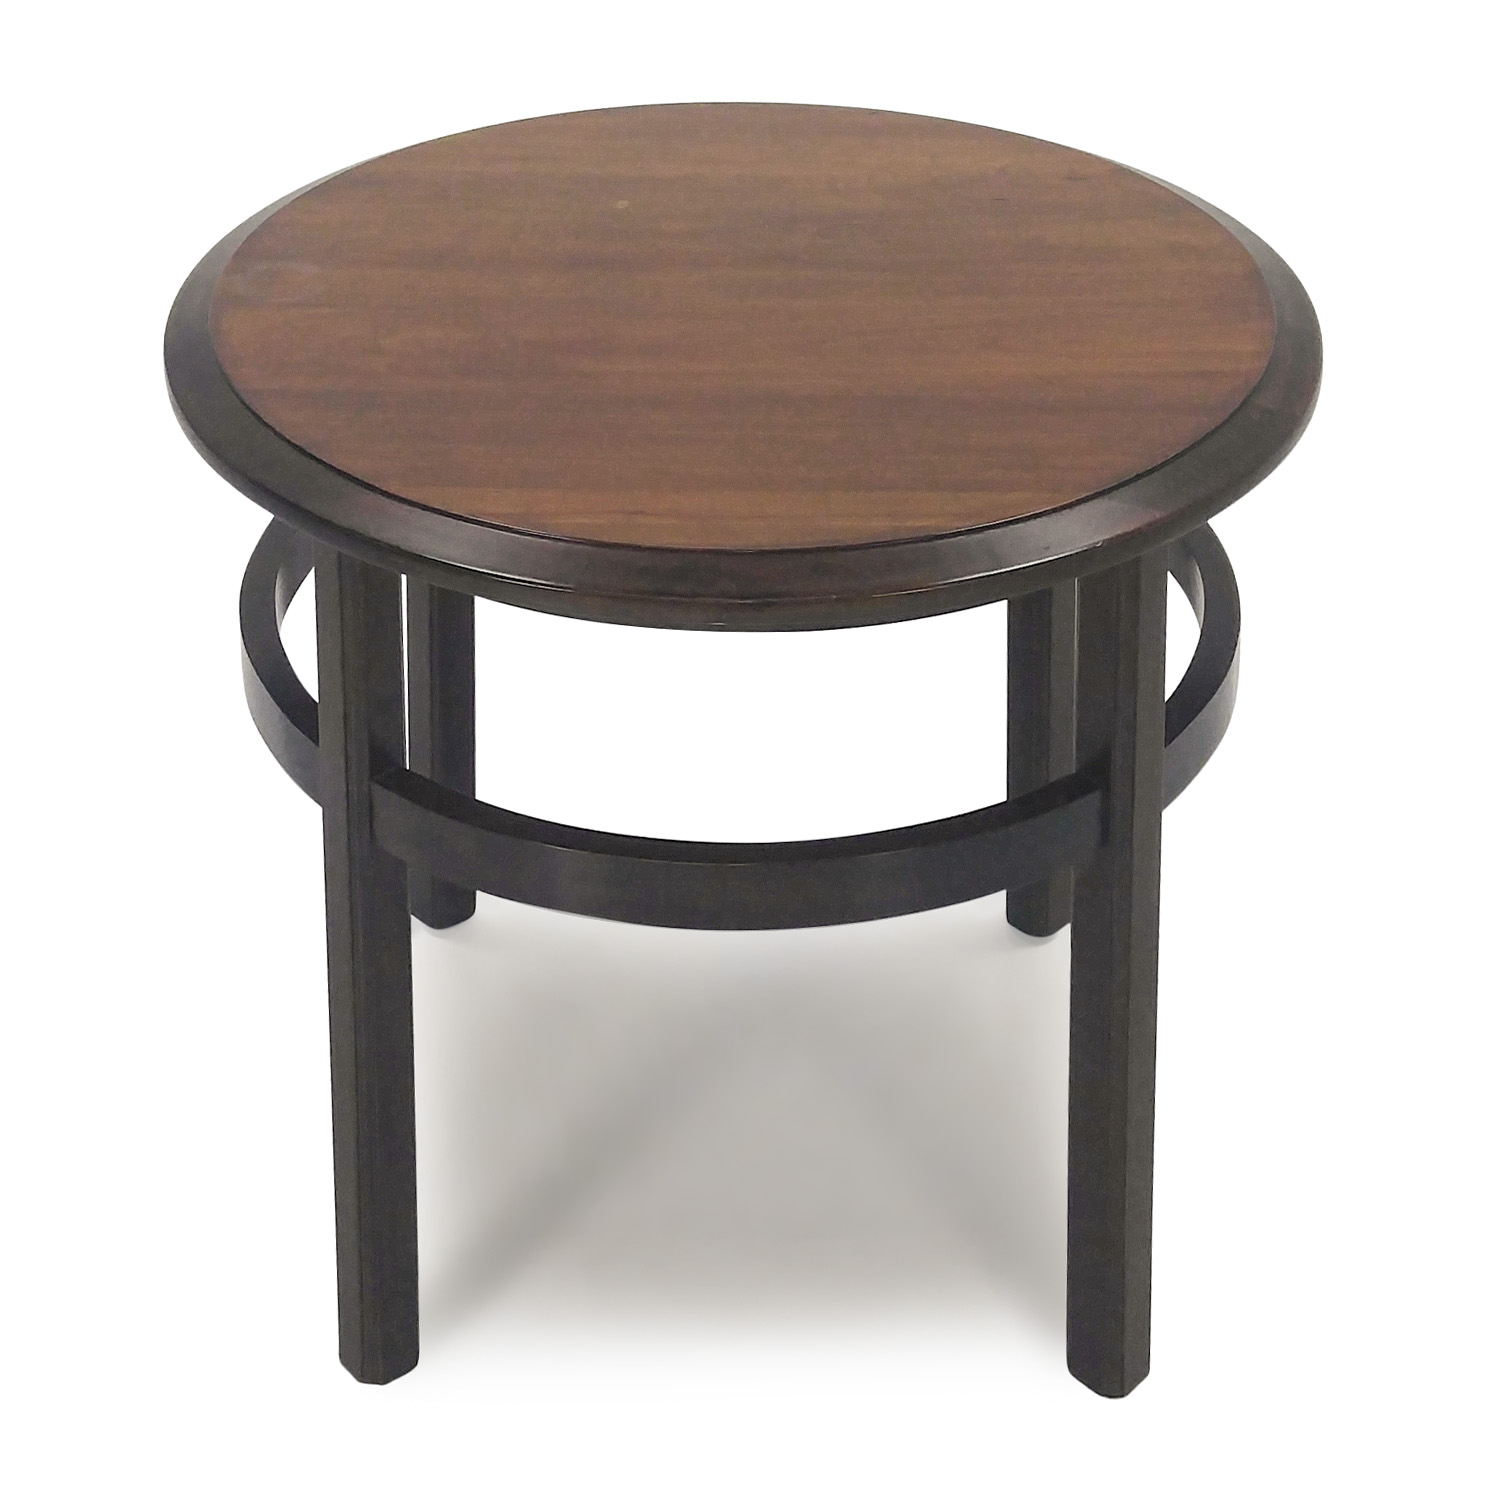 75 OFF HomeGoods Decorative Pastel Side Table Tables